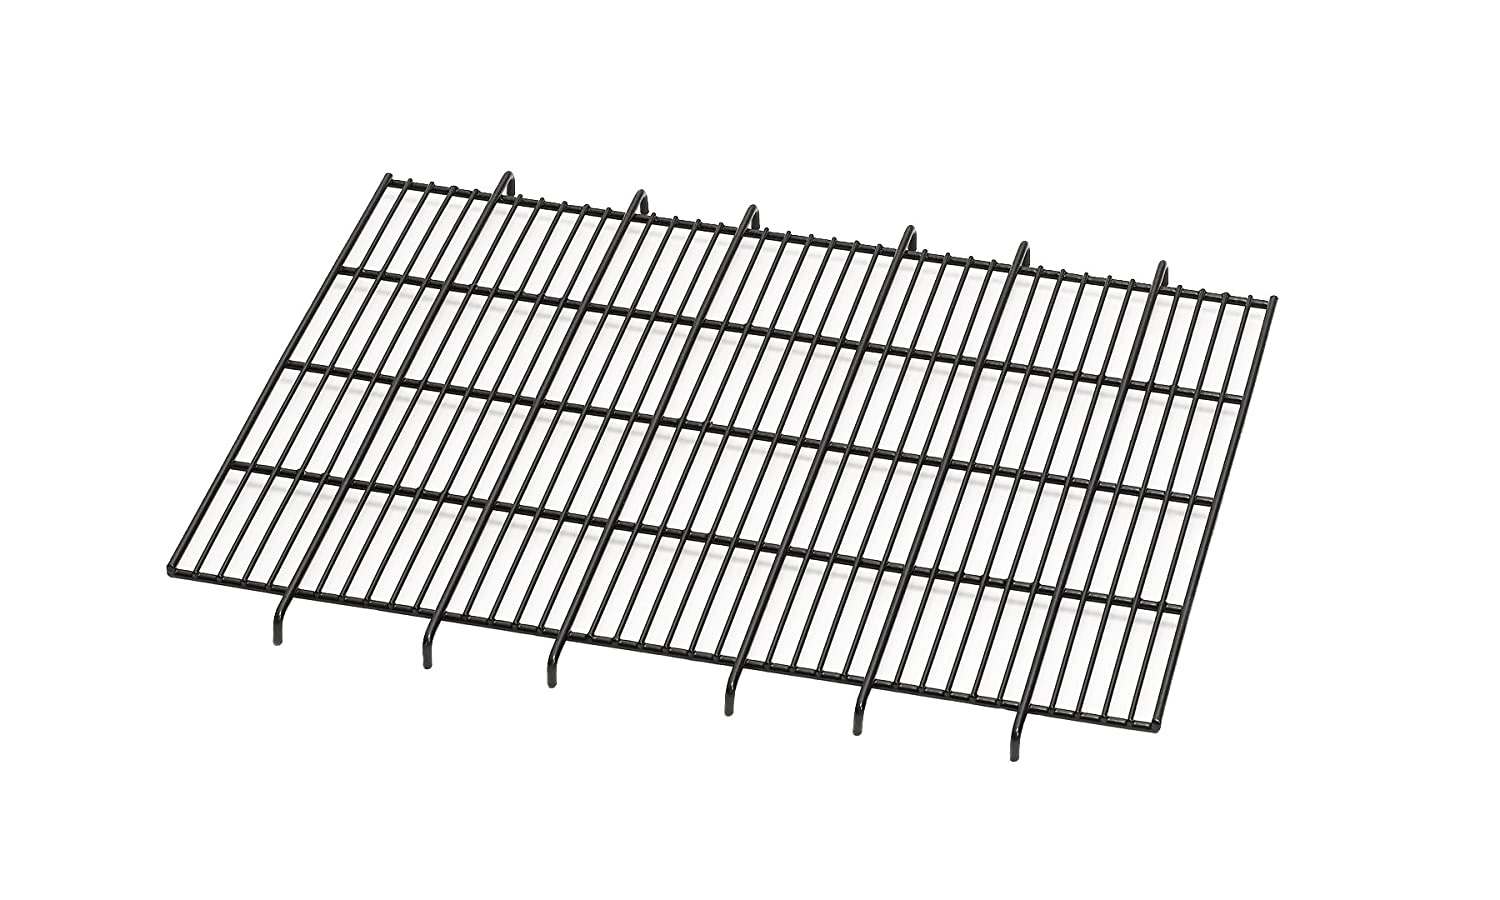 (Fits Metal Dog Crate Models 1624, 1624DD, 724UP) MidWest Homes for Pets Floor Grid Fits